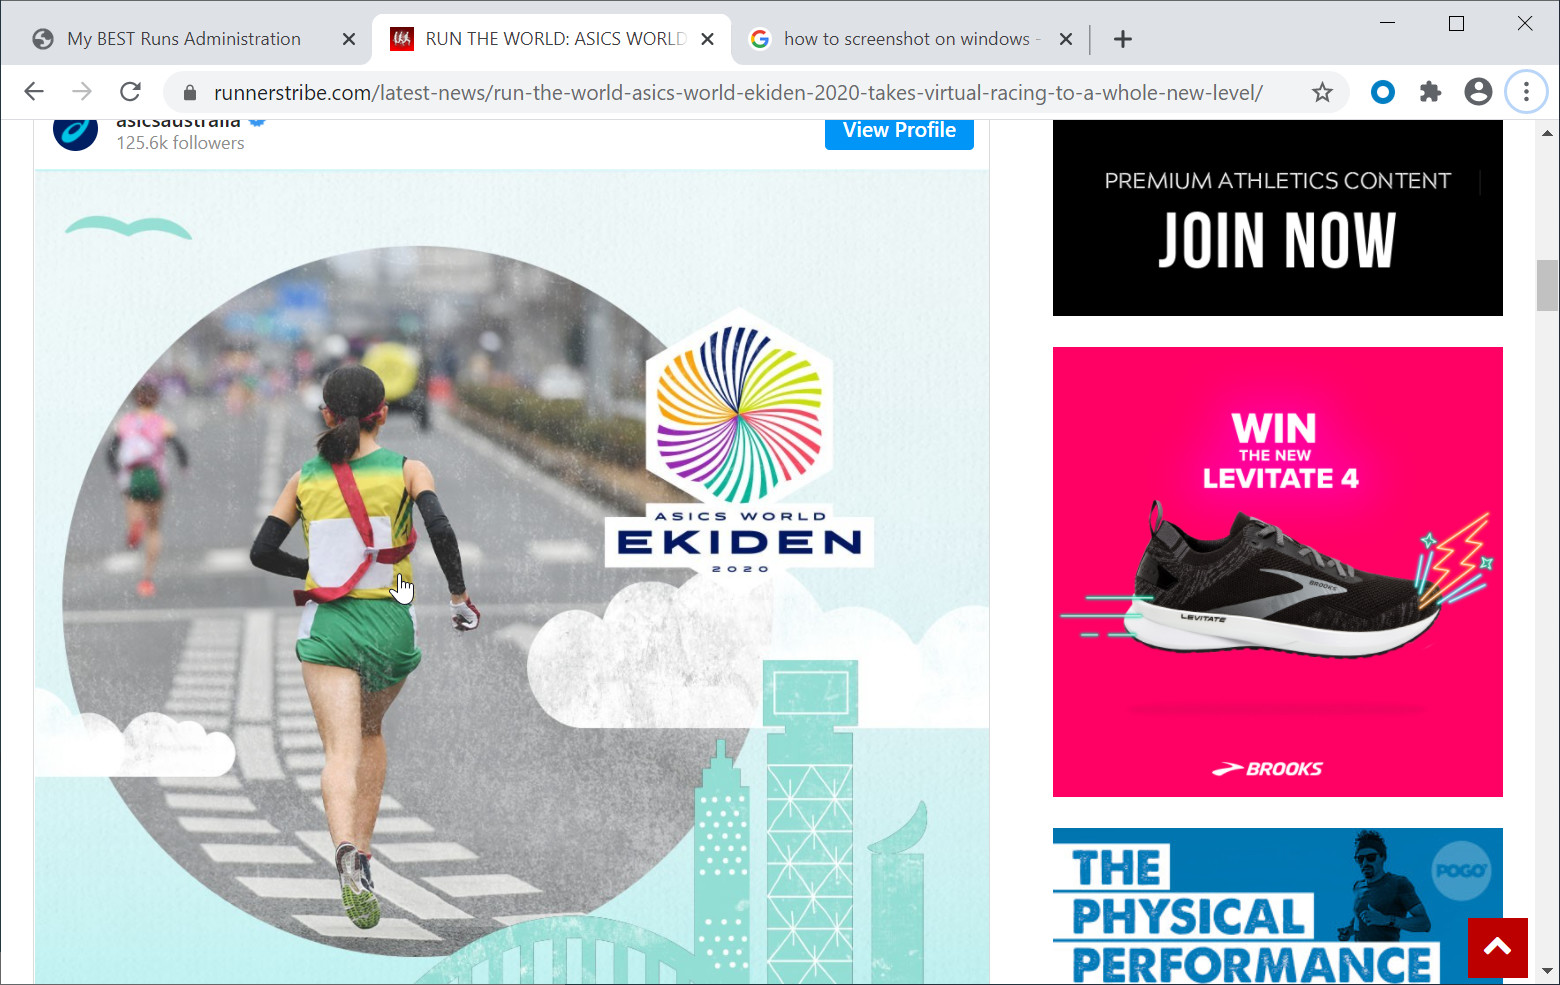 RUN THE WORLD: ASICS WORLD EKIDEN 2020 TAKES VIRTUAL RACING TO A WHOLE NEW LEVEL